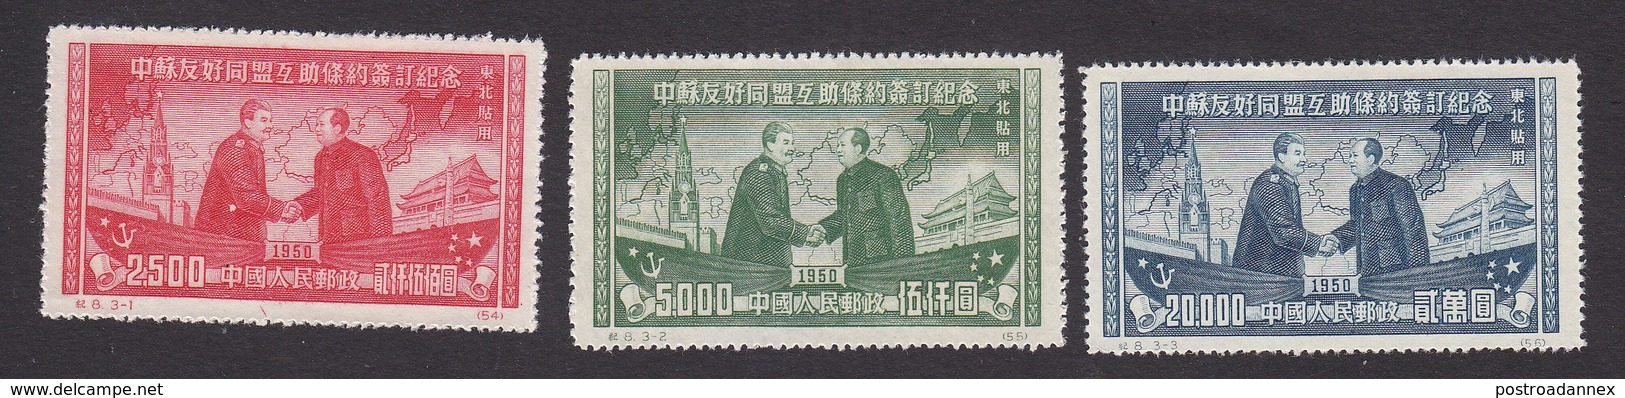 PRC, North Eastern China, Scott #1L176-1L178 Reprint, Mint Hinged, Mao And Stalin, Issued 1950 - Chine Du Nord-Est 1946-48